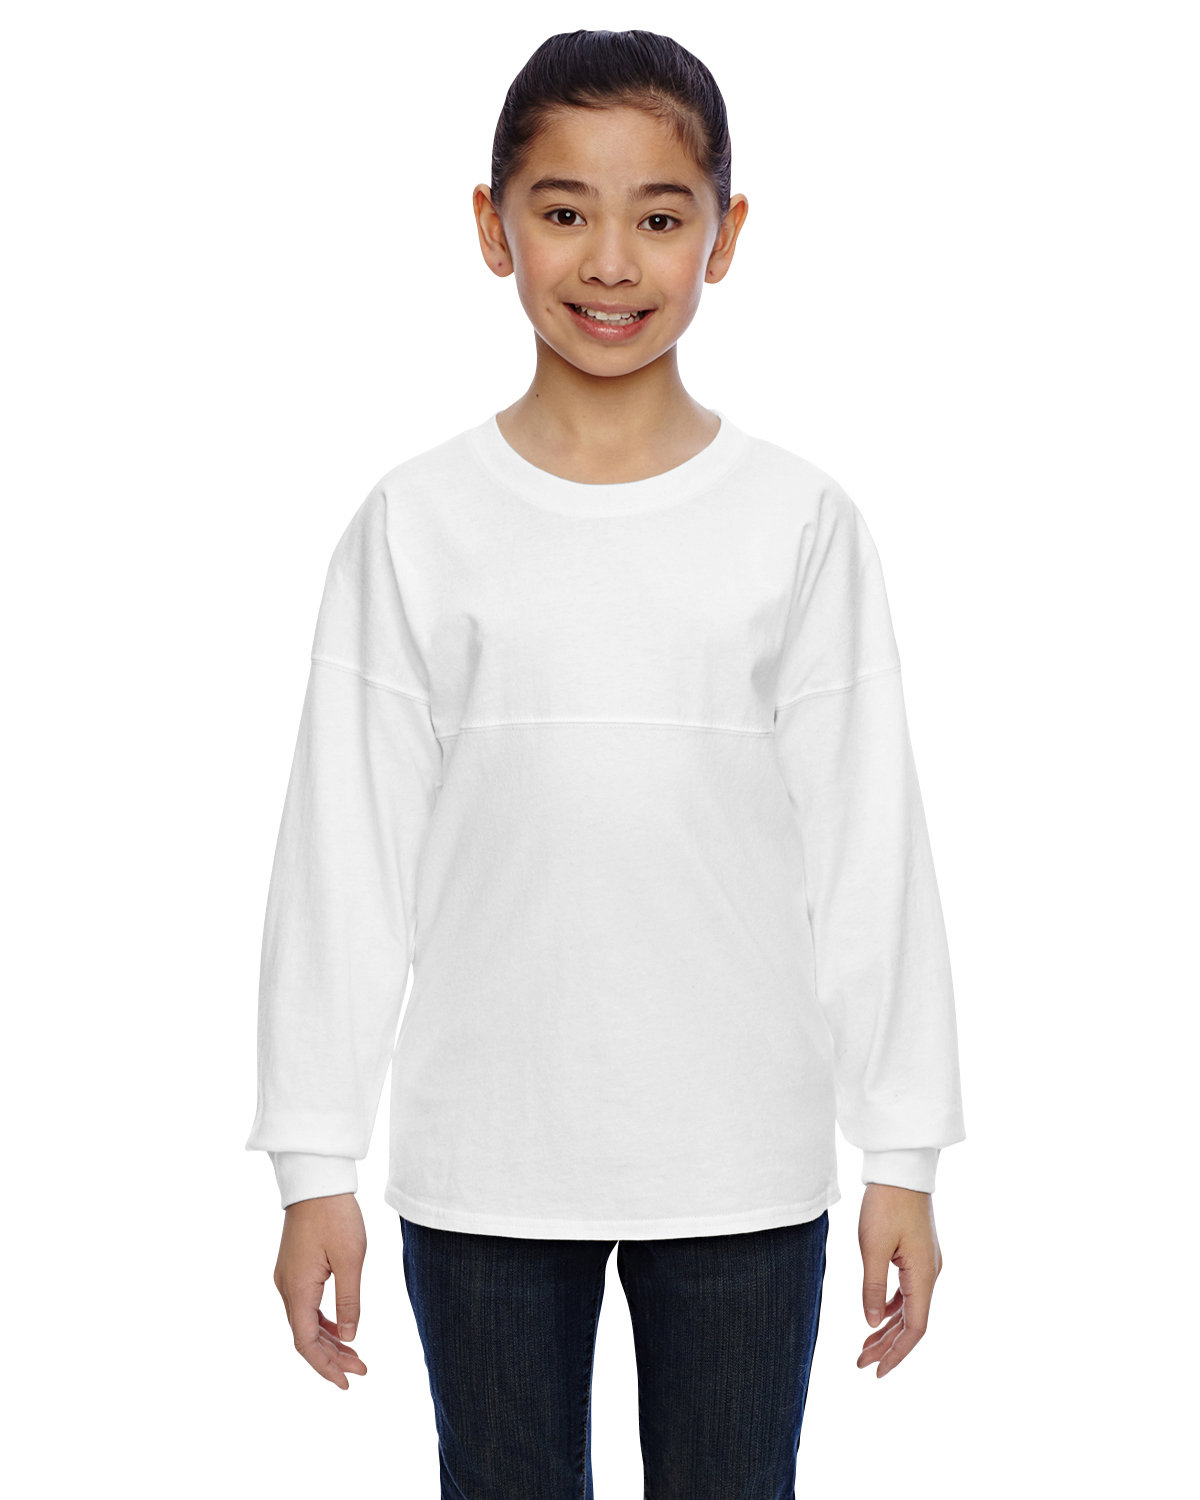 J America Youth Game Day Jersey WHITE